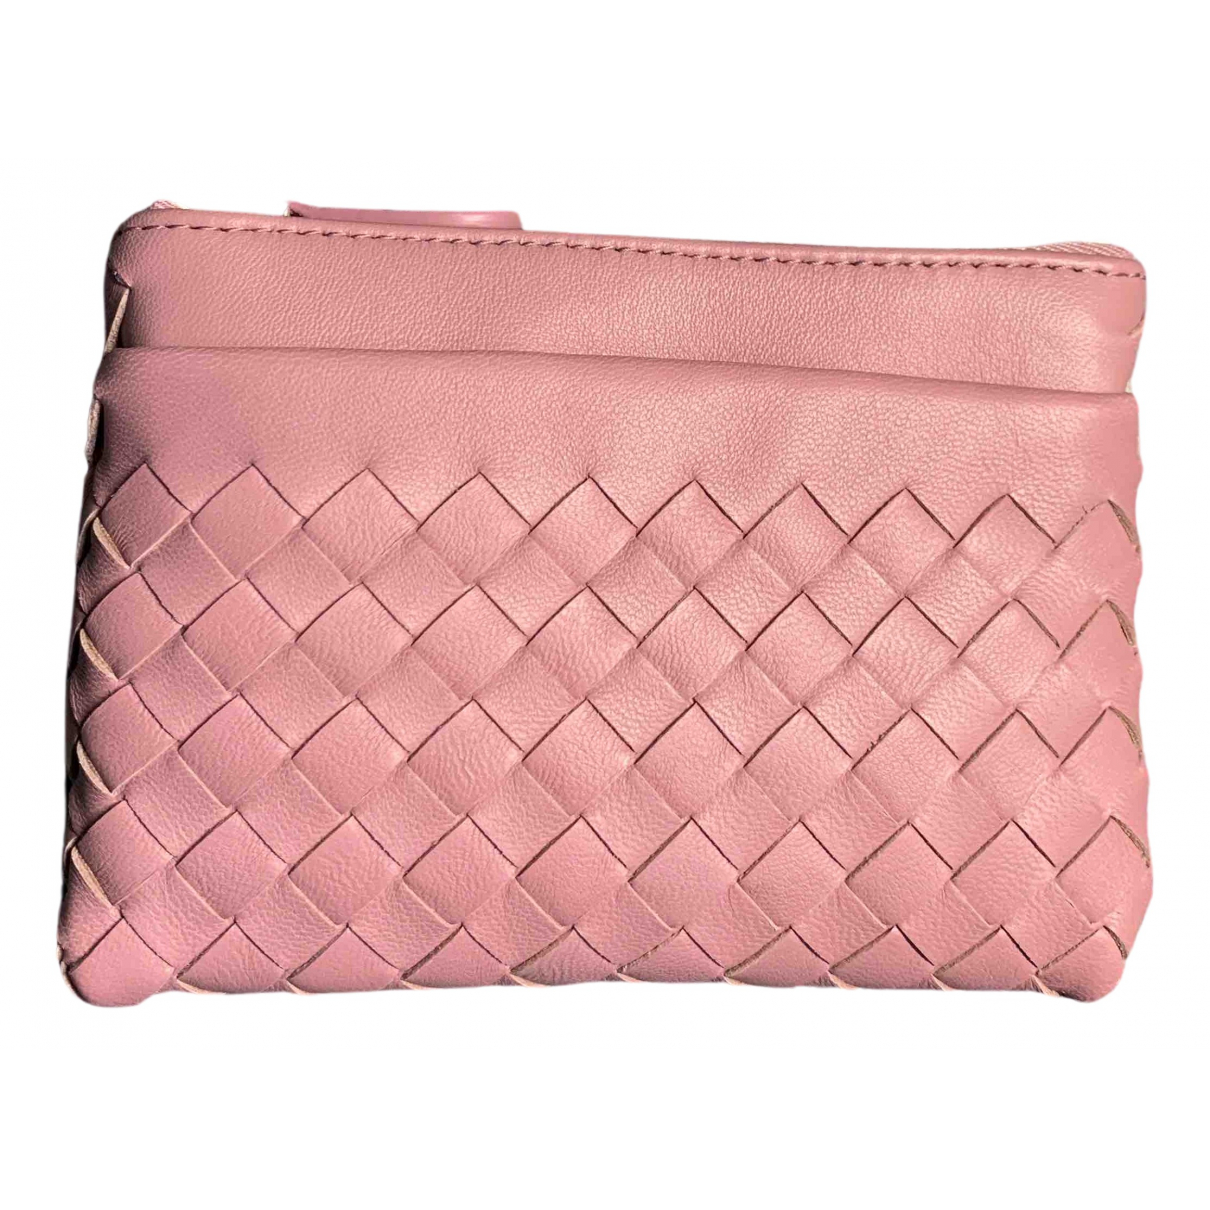 Bottega Veneta \N Kleinlederwaren in  Rosa Leder